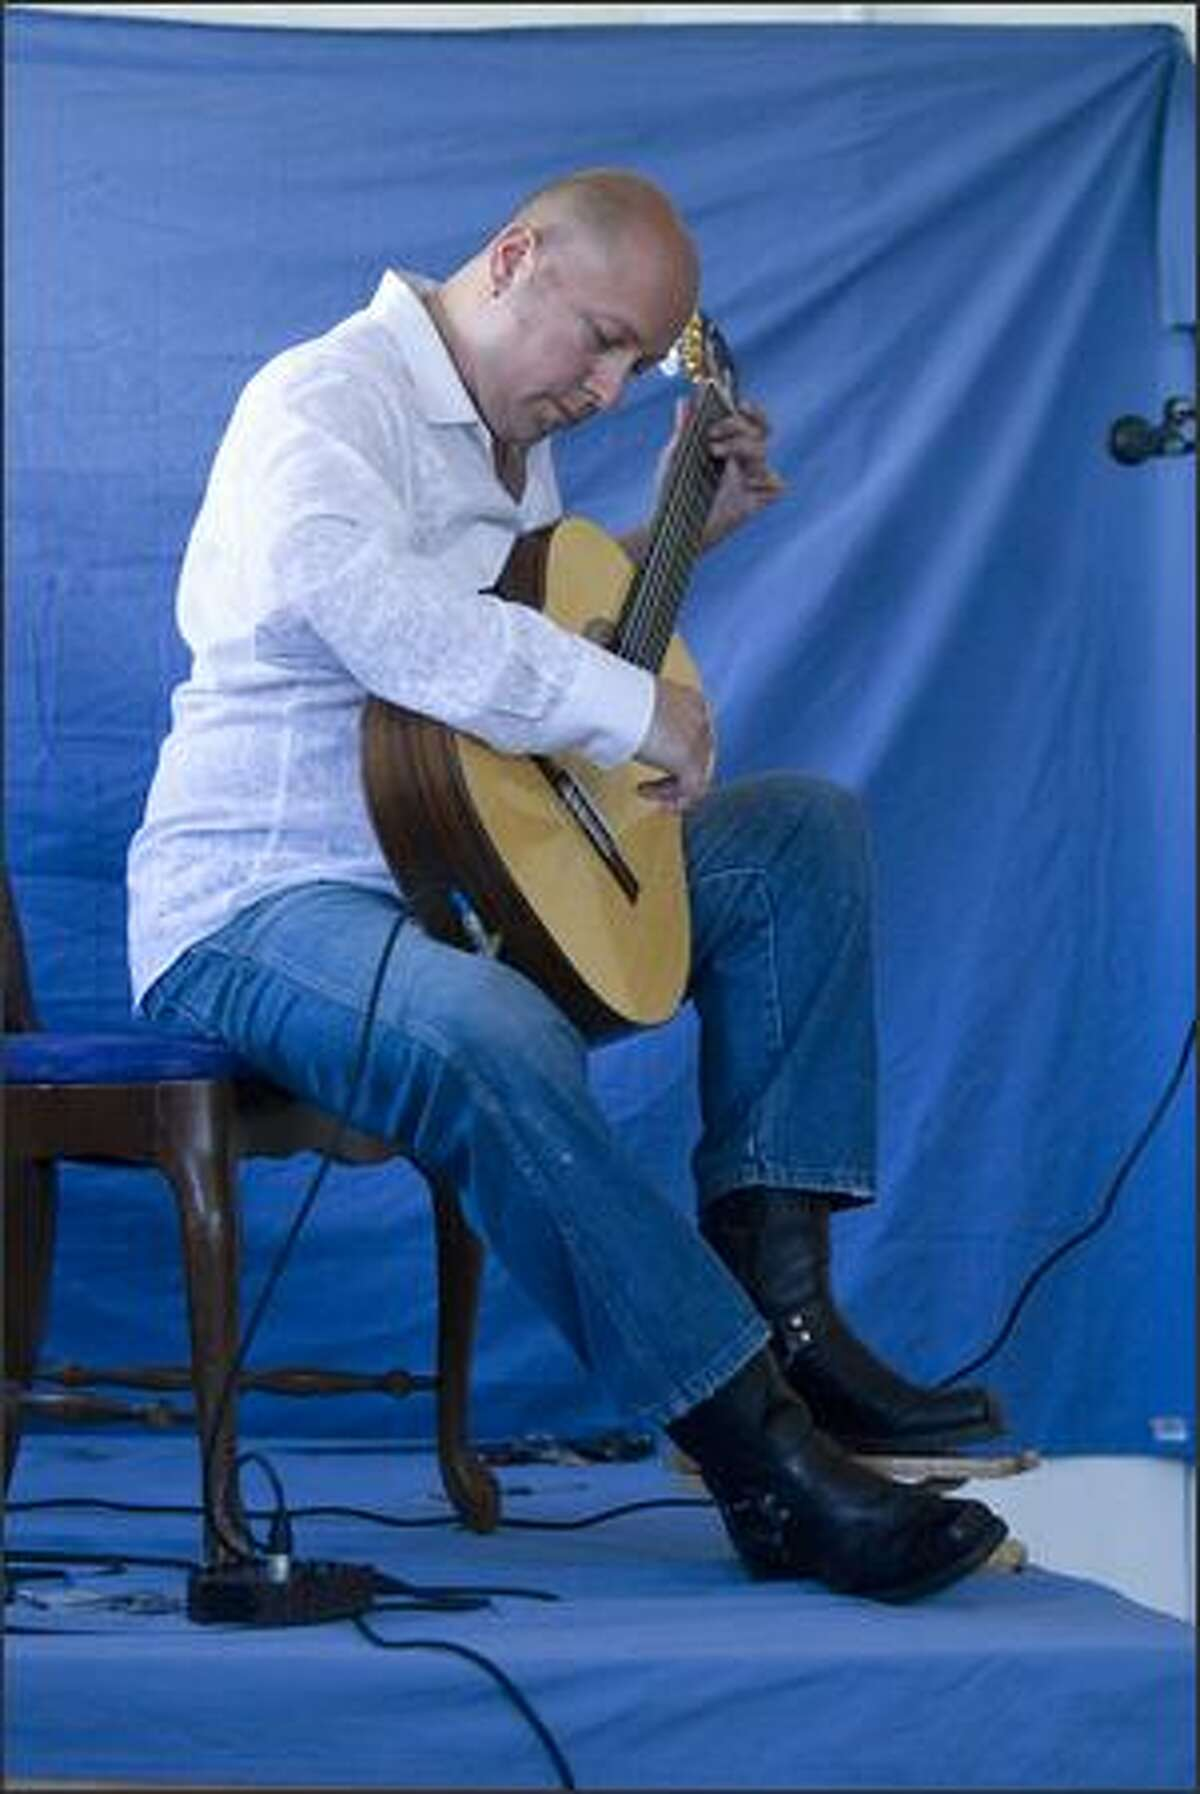 Andre Feriante's guitar style blends classical and Spanish styles for a small group at Artopia in Georgetown's historic business district Saturday.